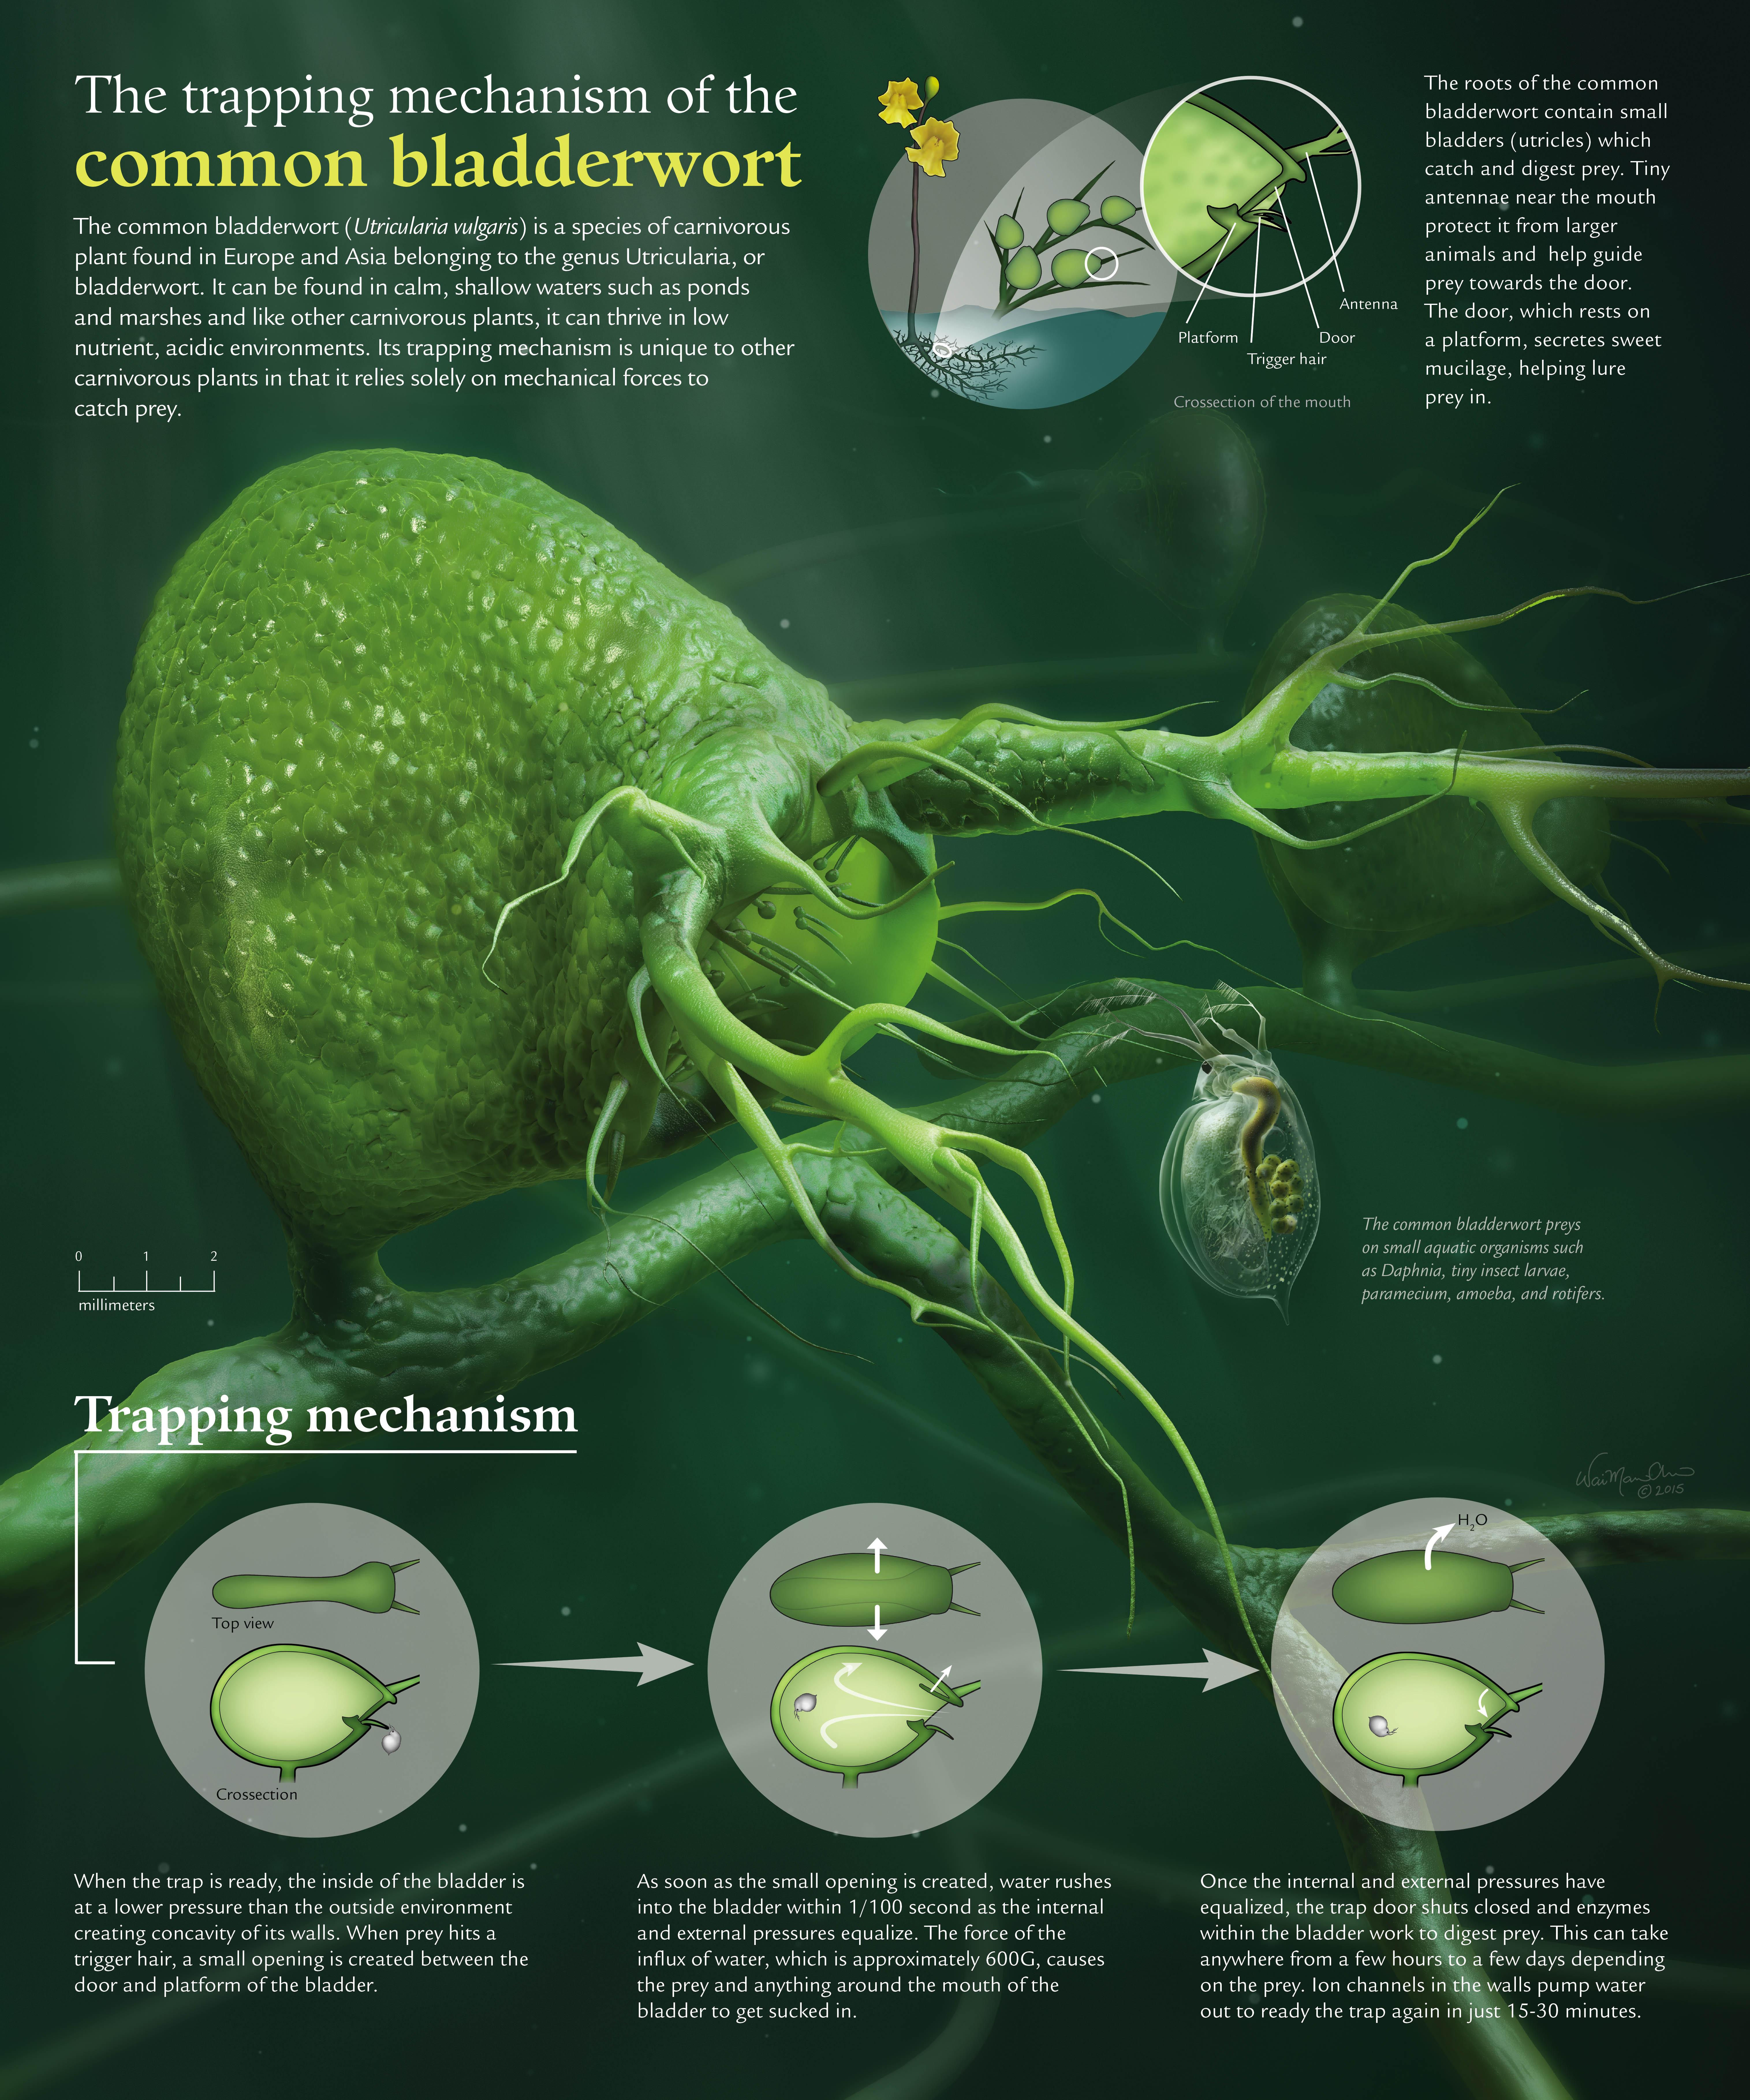 Biomedical artists blend beauty, science in NSF competition   UIC News ... A Common Man Poster